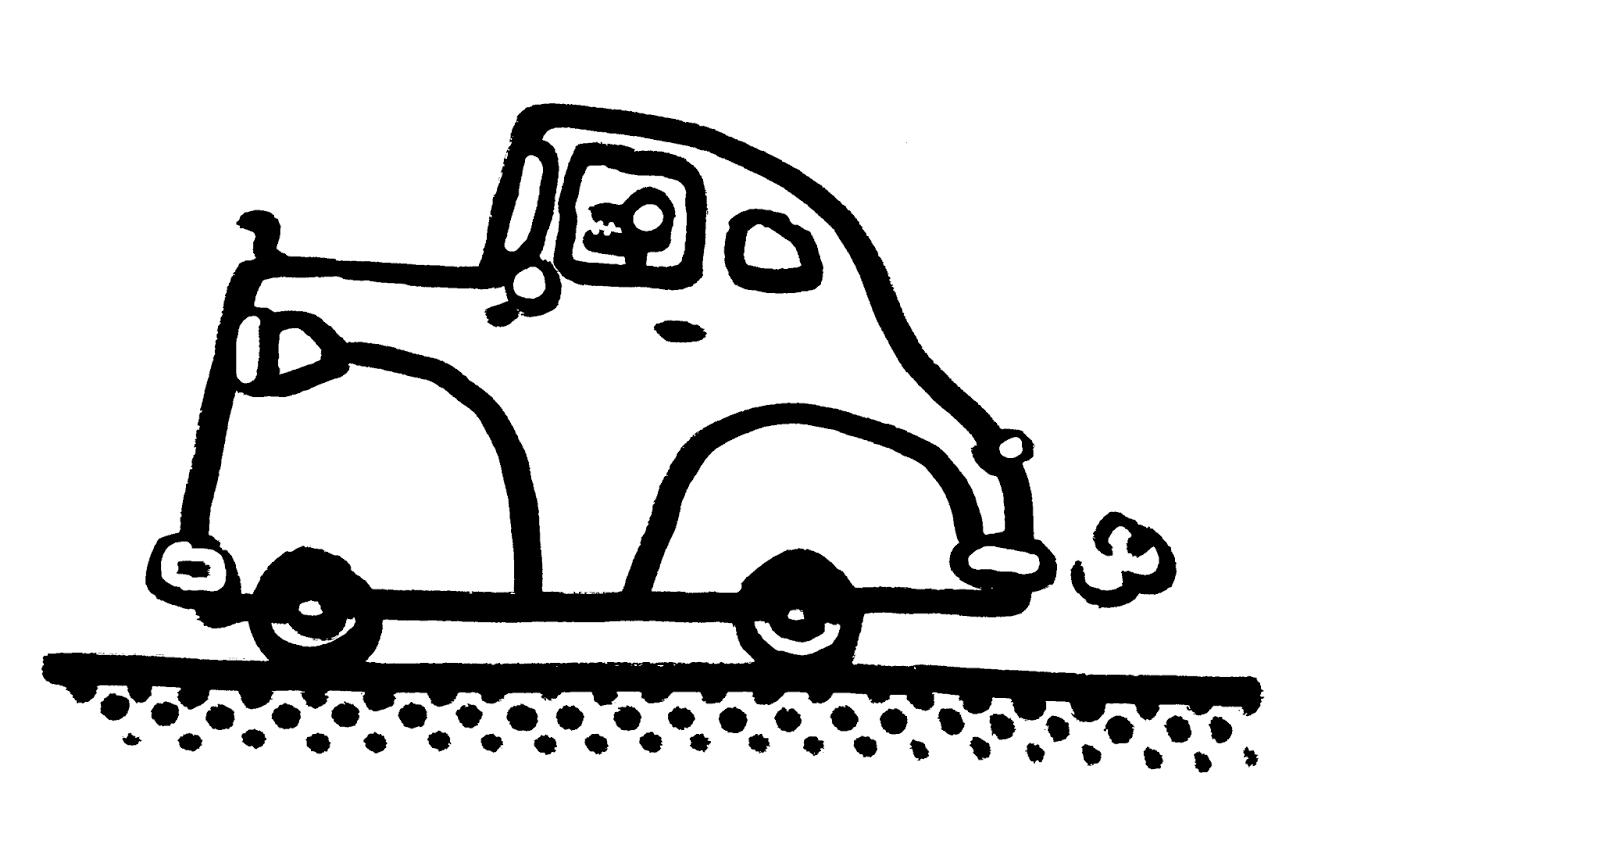 Car Coloring Book Pdf furthermore Fadh2 furthermore Pickup Truck Coloring Pages together with 2012 04 01 archive further Nutcracker Coloring Pages For Your Little Ones 0095595. on king of muscle cars